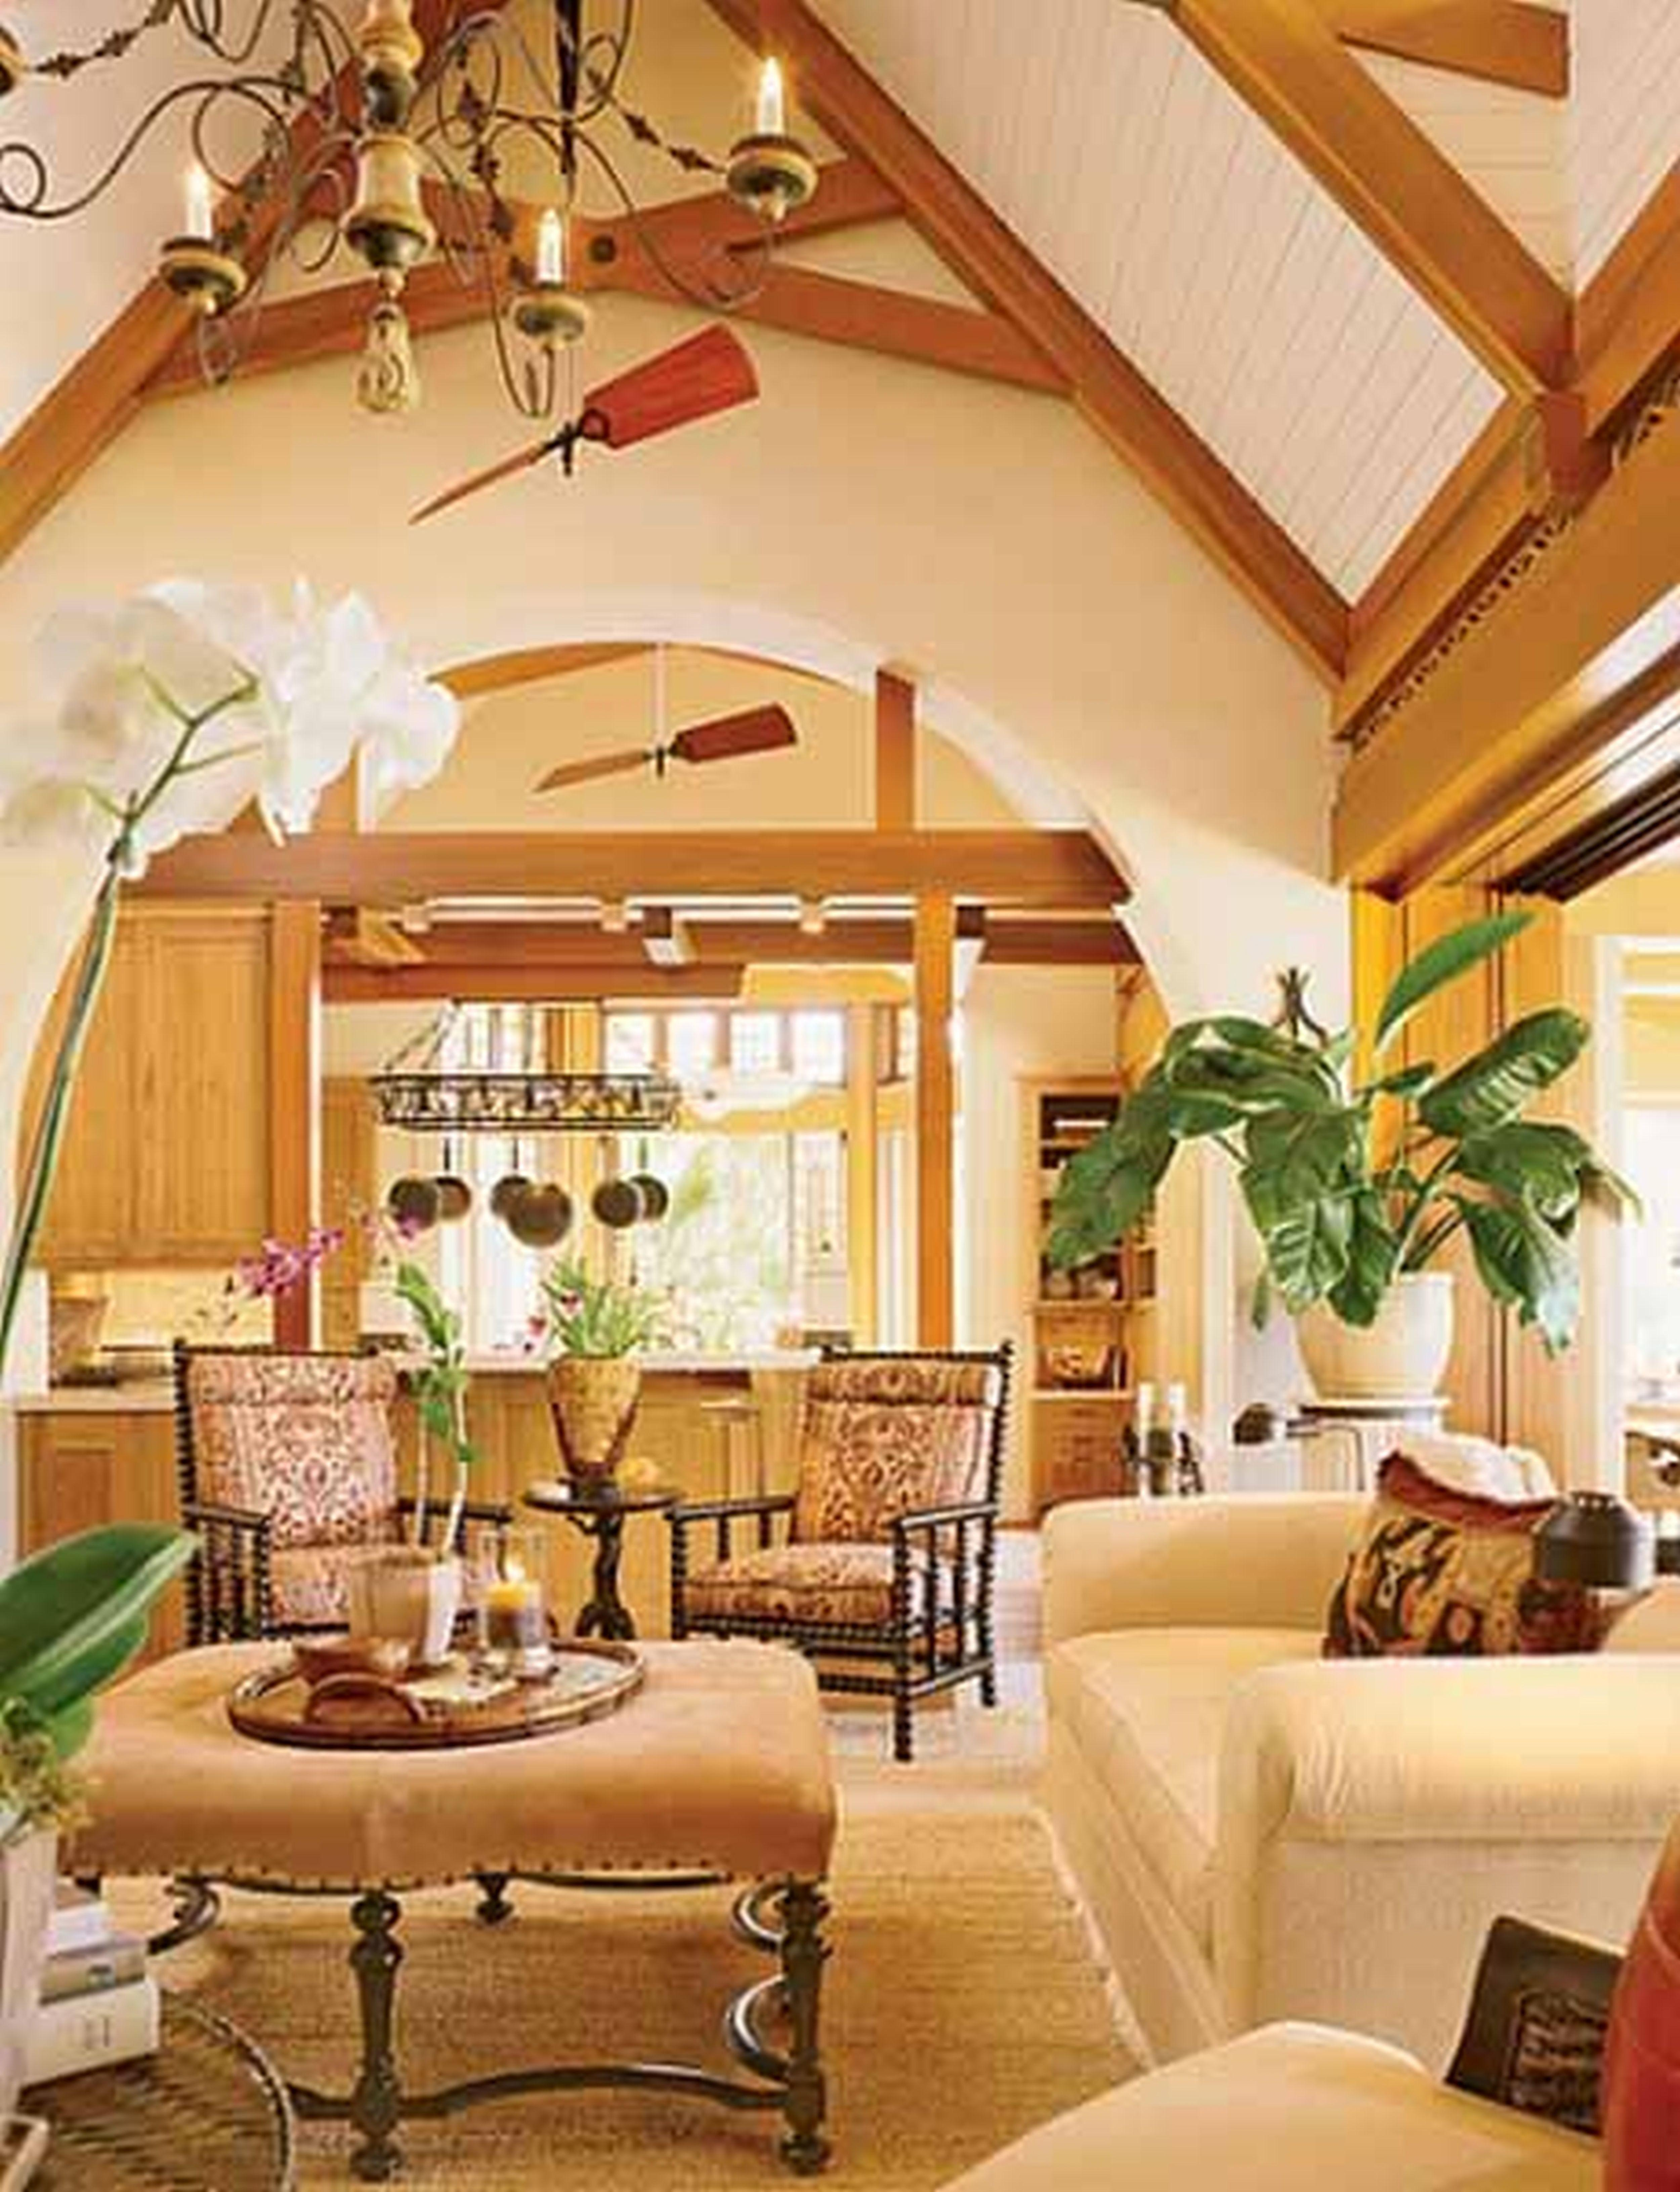 tropical home decor comfy tropical decor ideas that combine style with practicality tropical home decor fabric coordinated comfy tropical decor ideas that combine